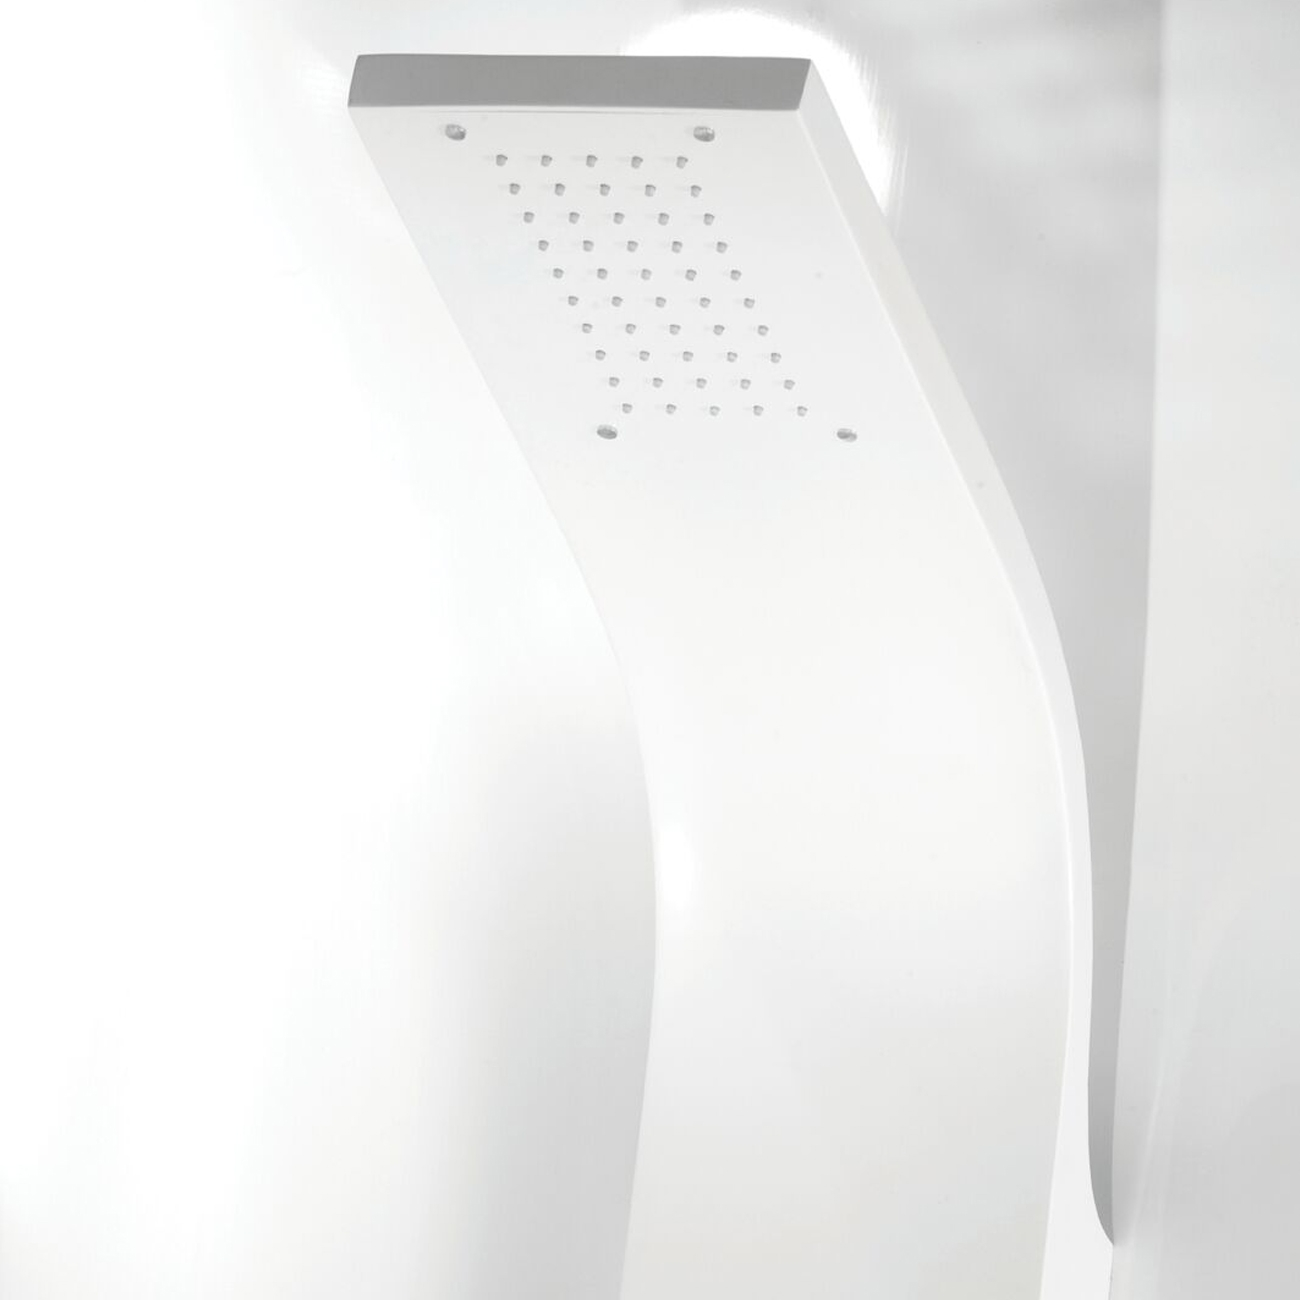 Cali Luna Thermostatic Shower Panel - White-3